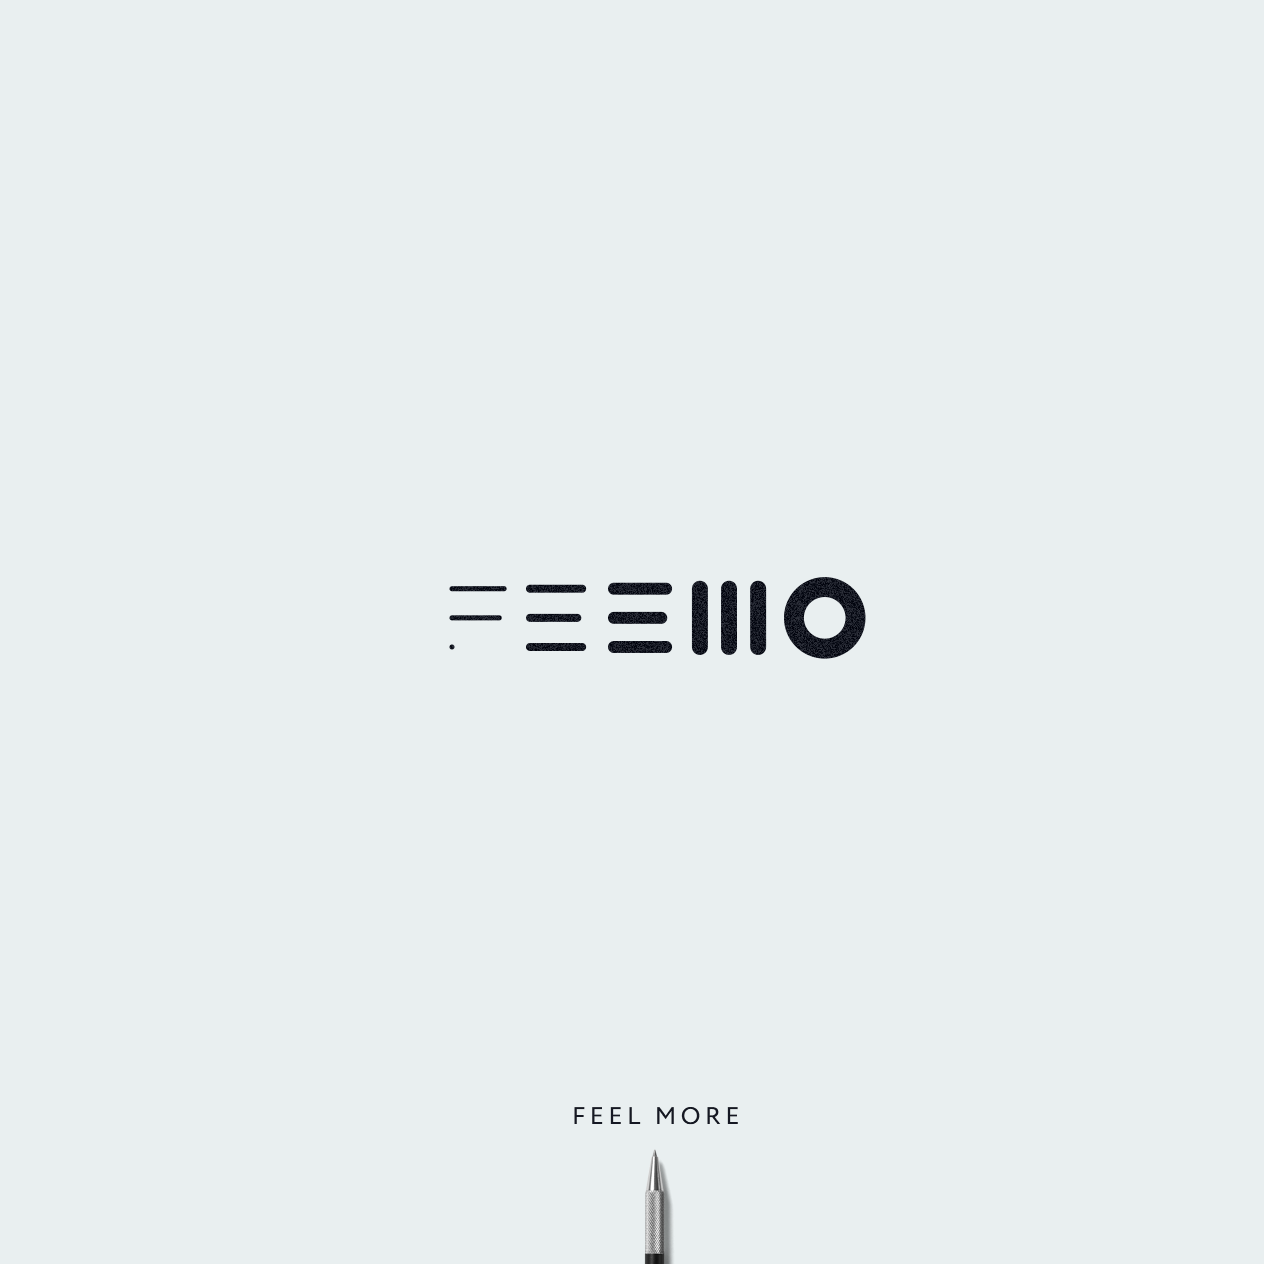 Logo with minimal geometric shapes